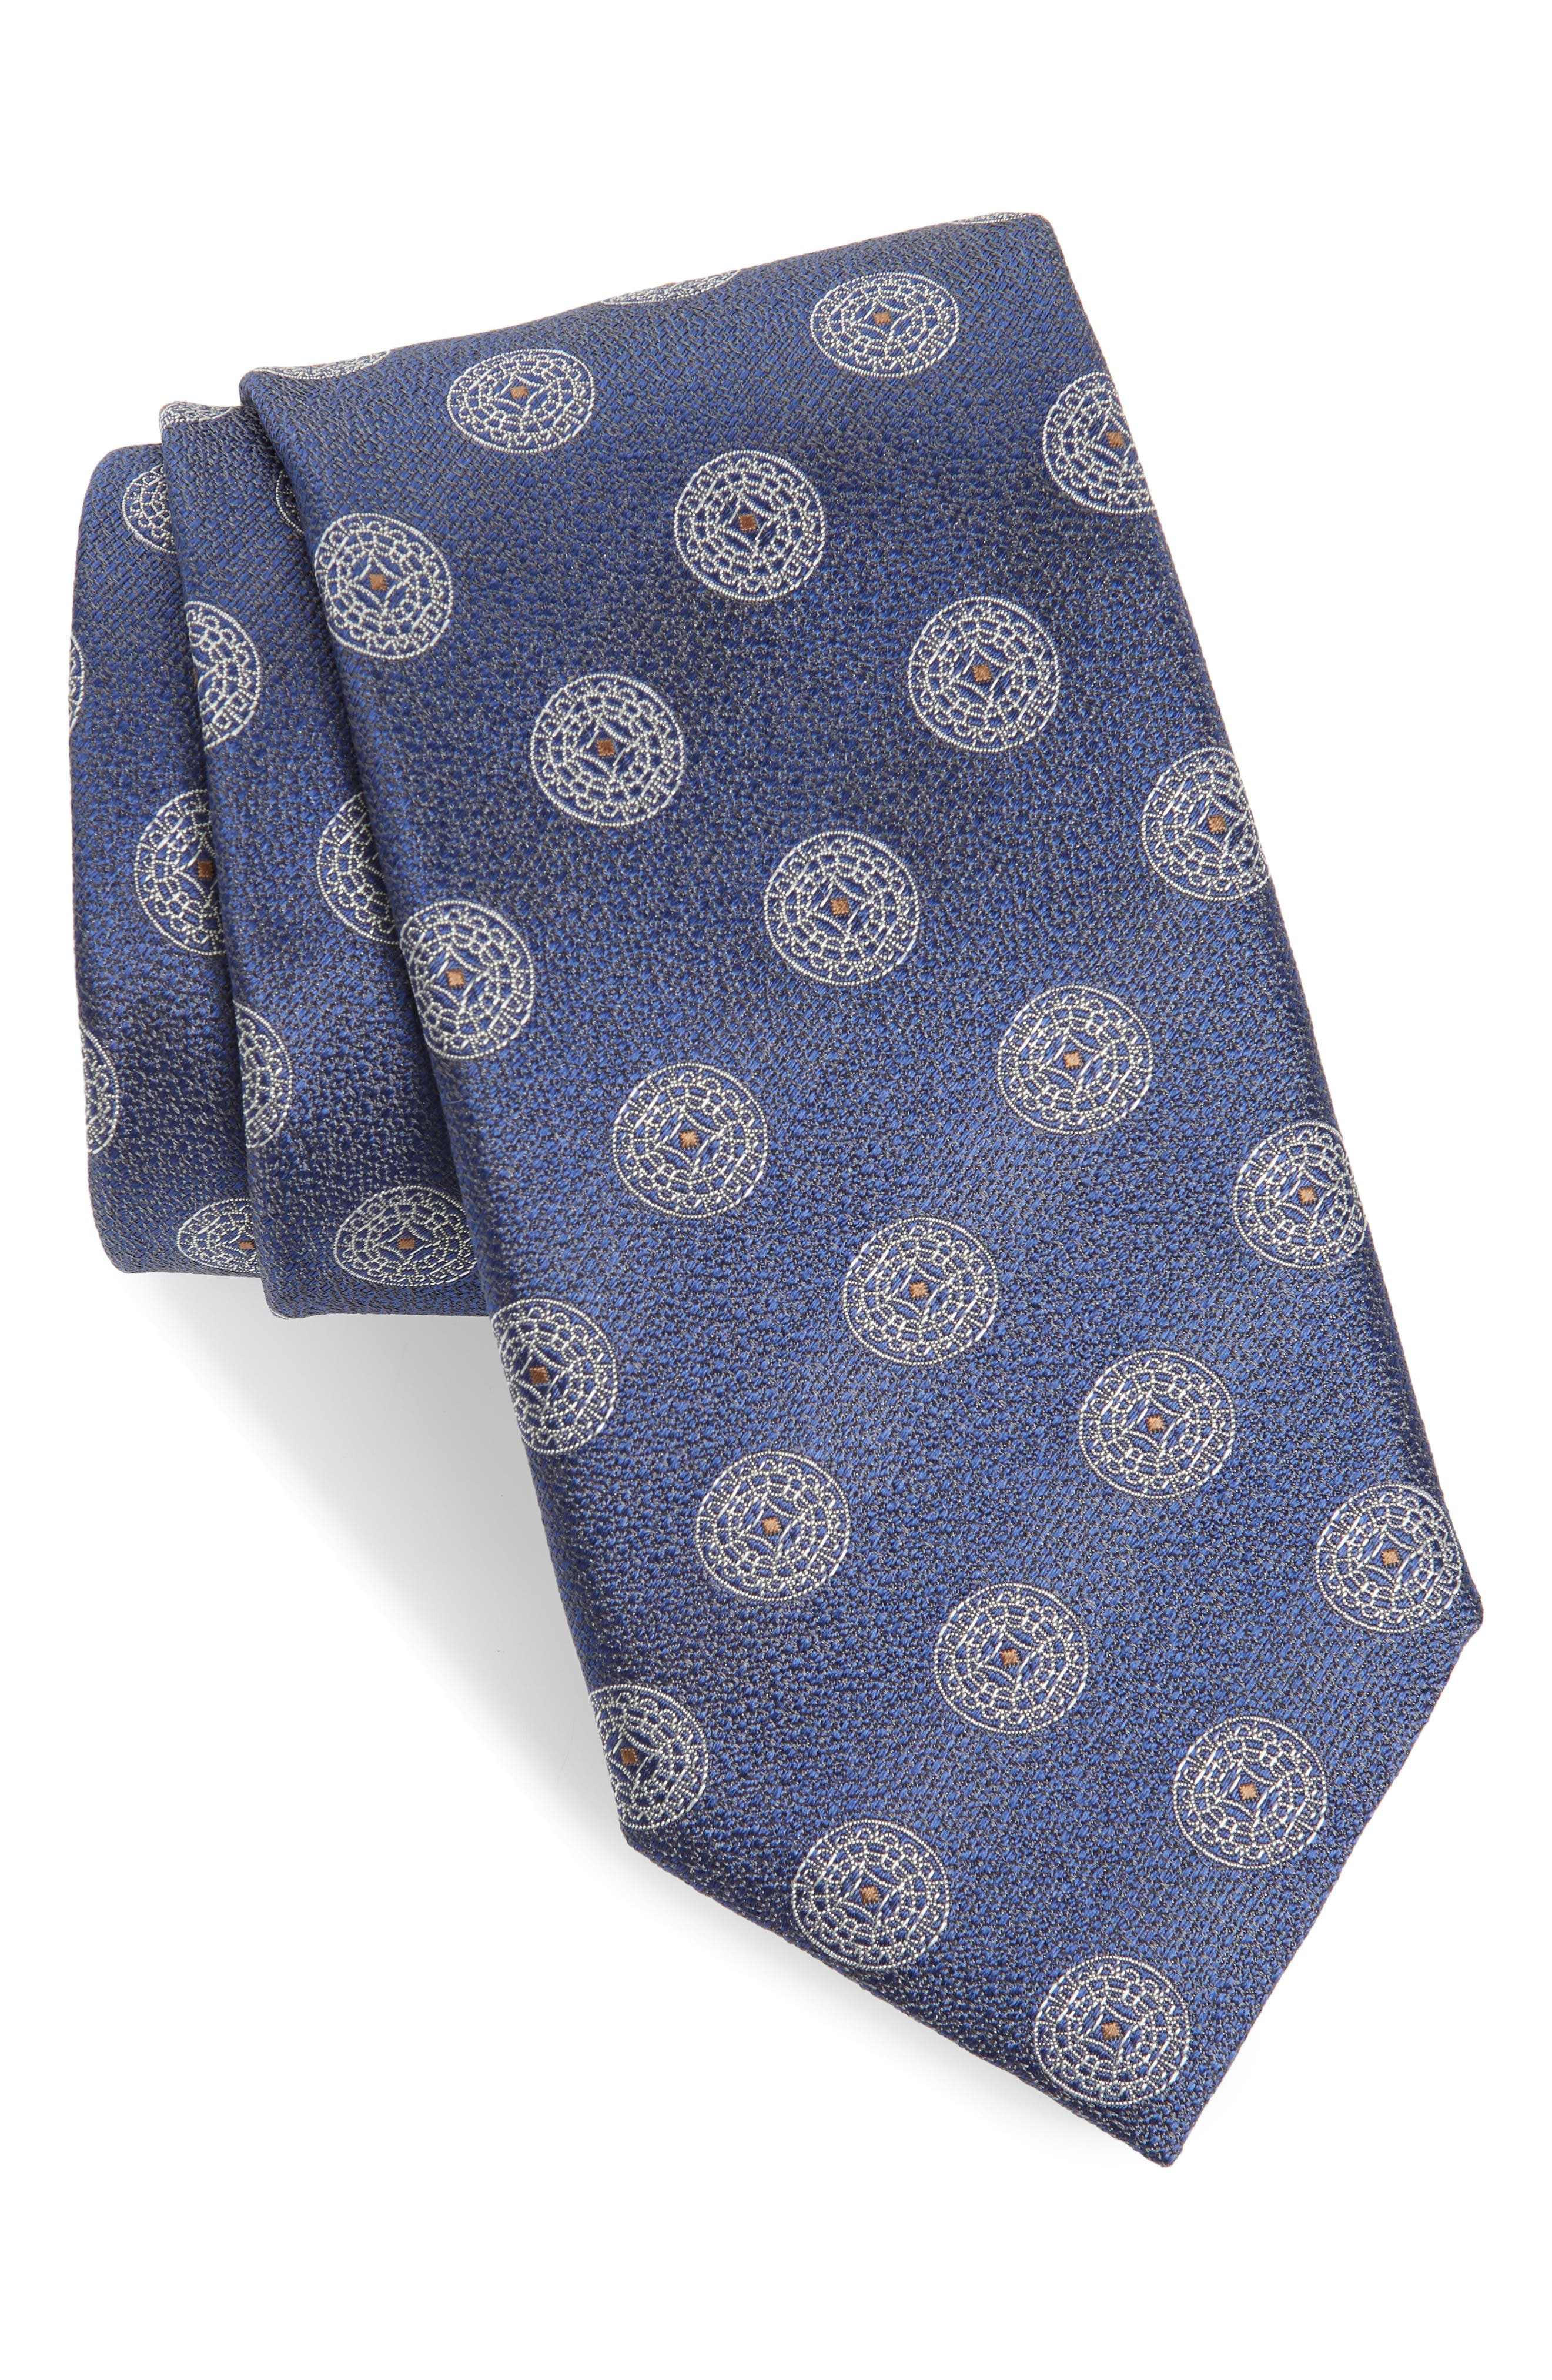 CANALI Medallion Silk Tie, Main, color, LIGHT BLUE